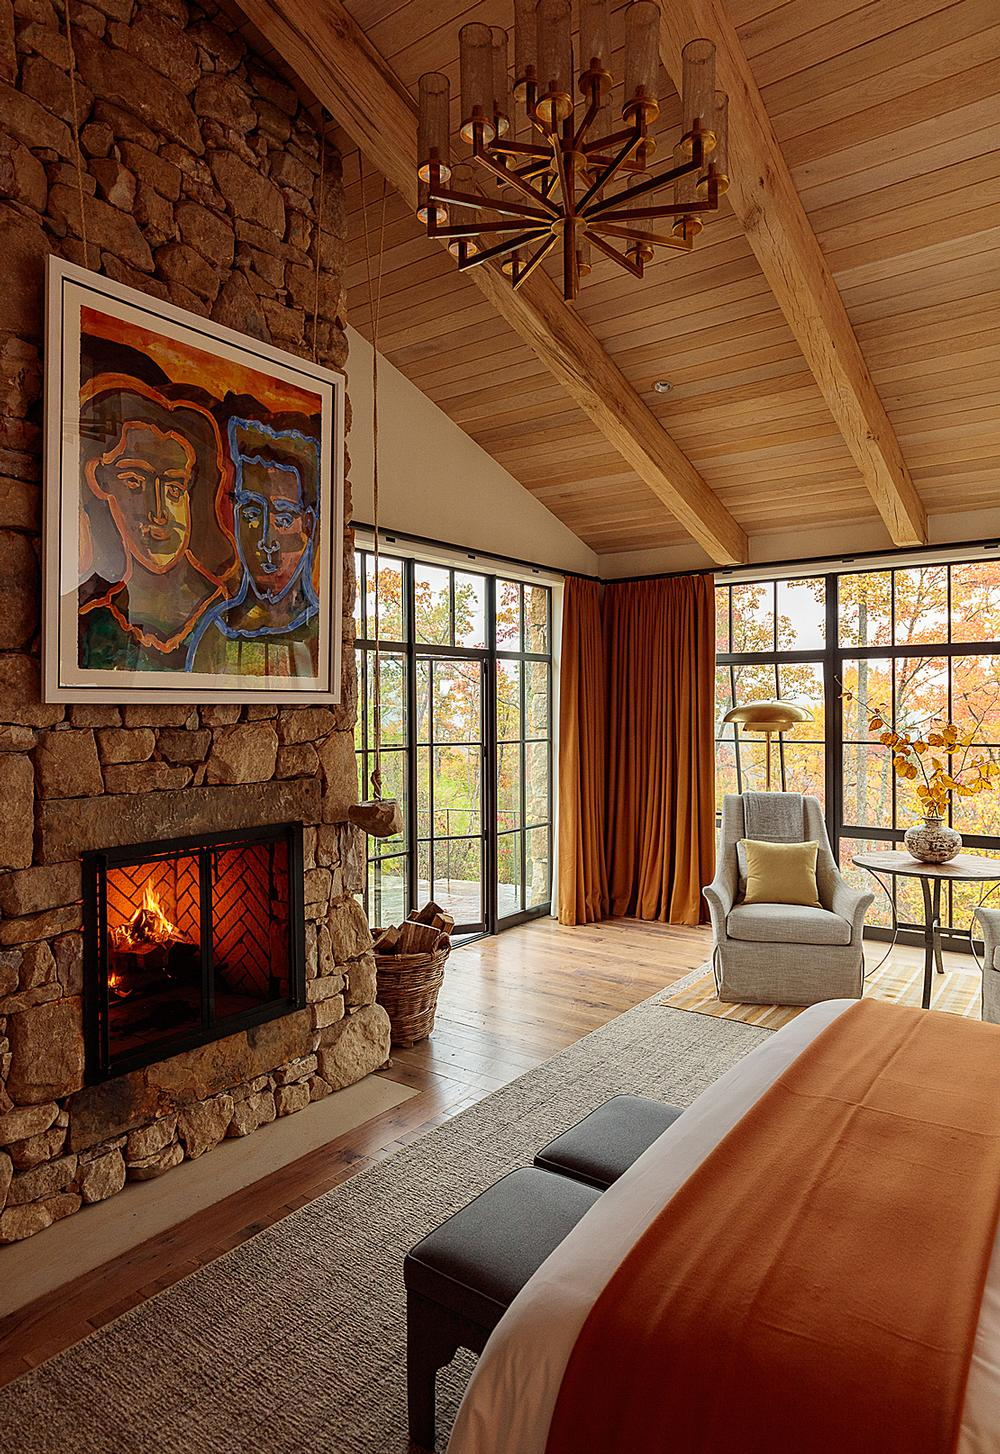 Earthy tones and natural materials create a relaxed feel